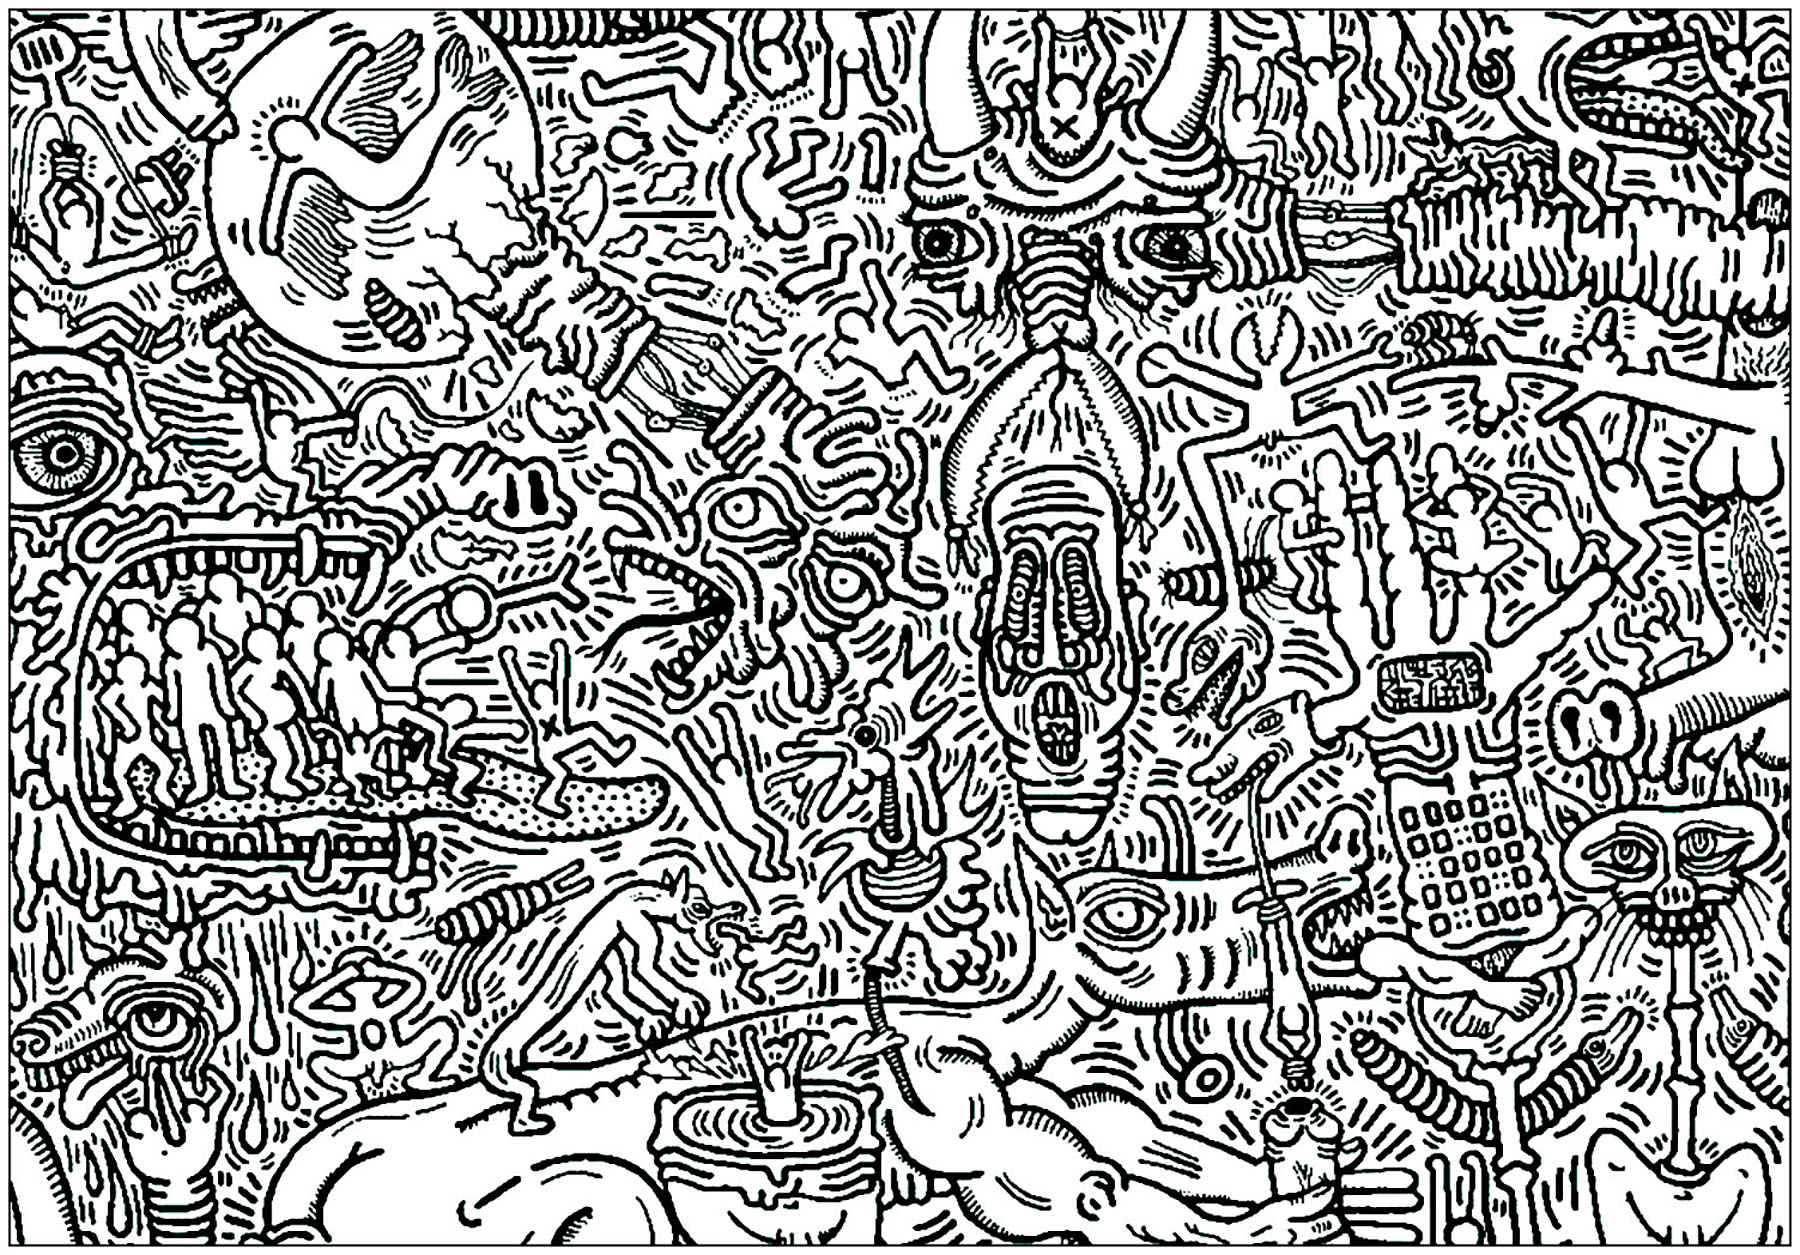 Simple Keith Haring coloring page for kids